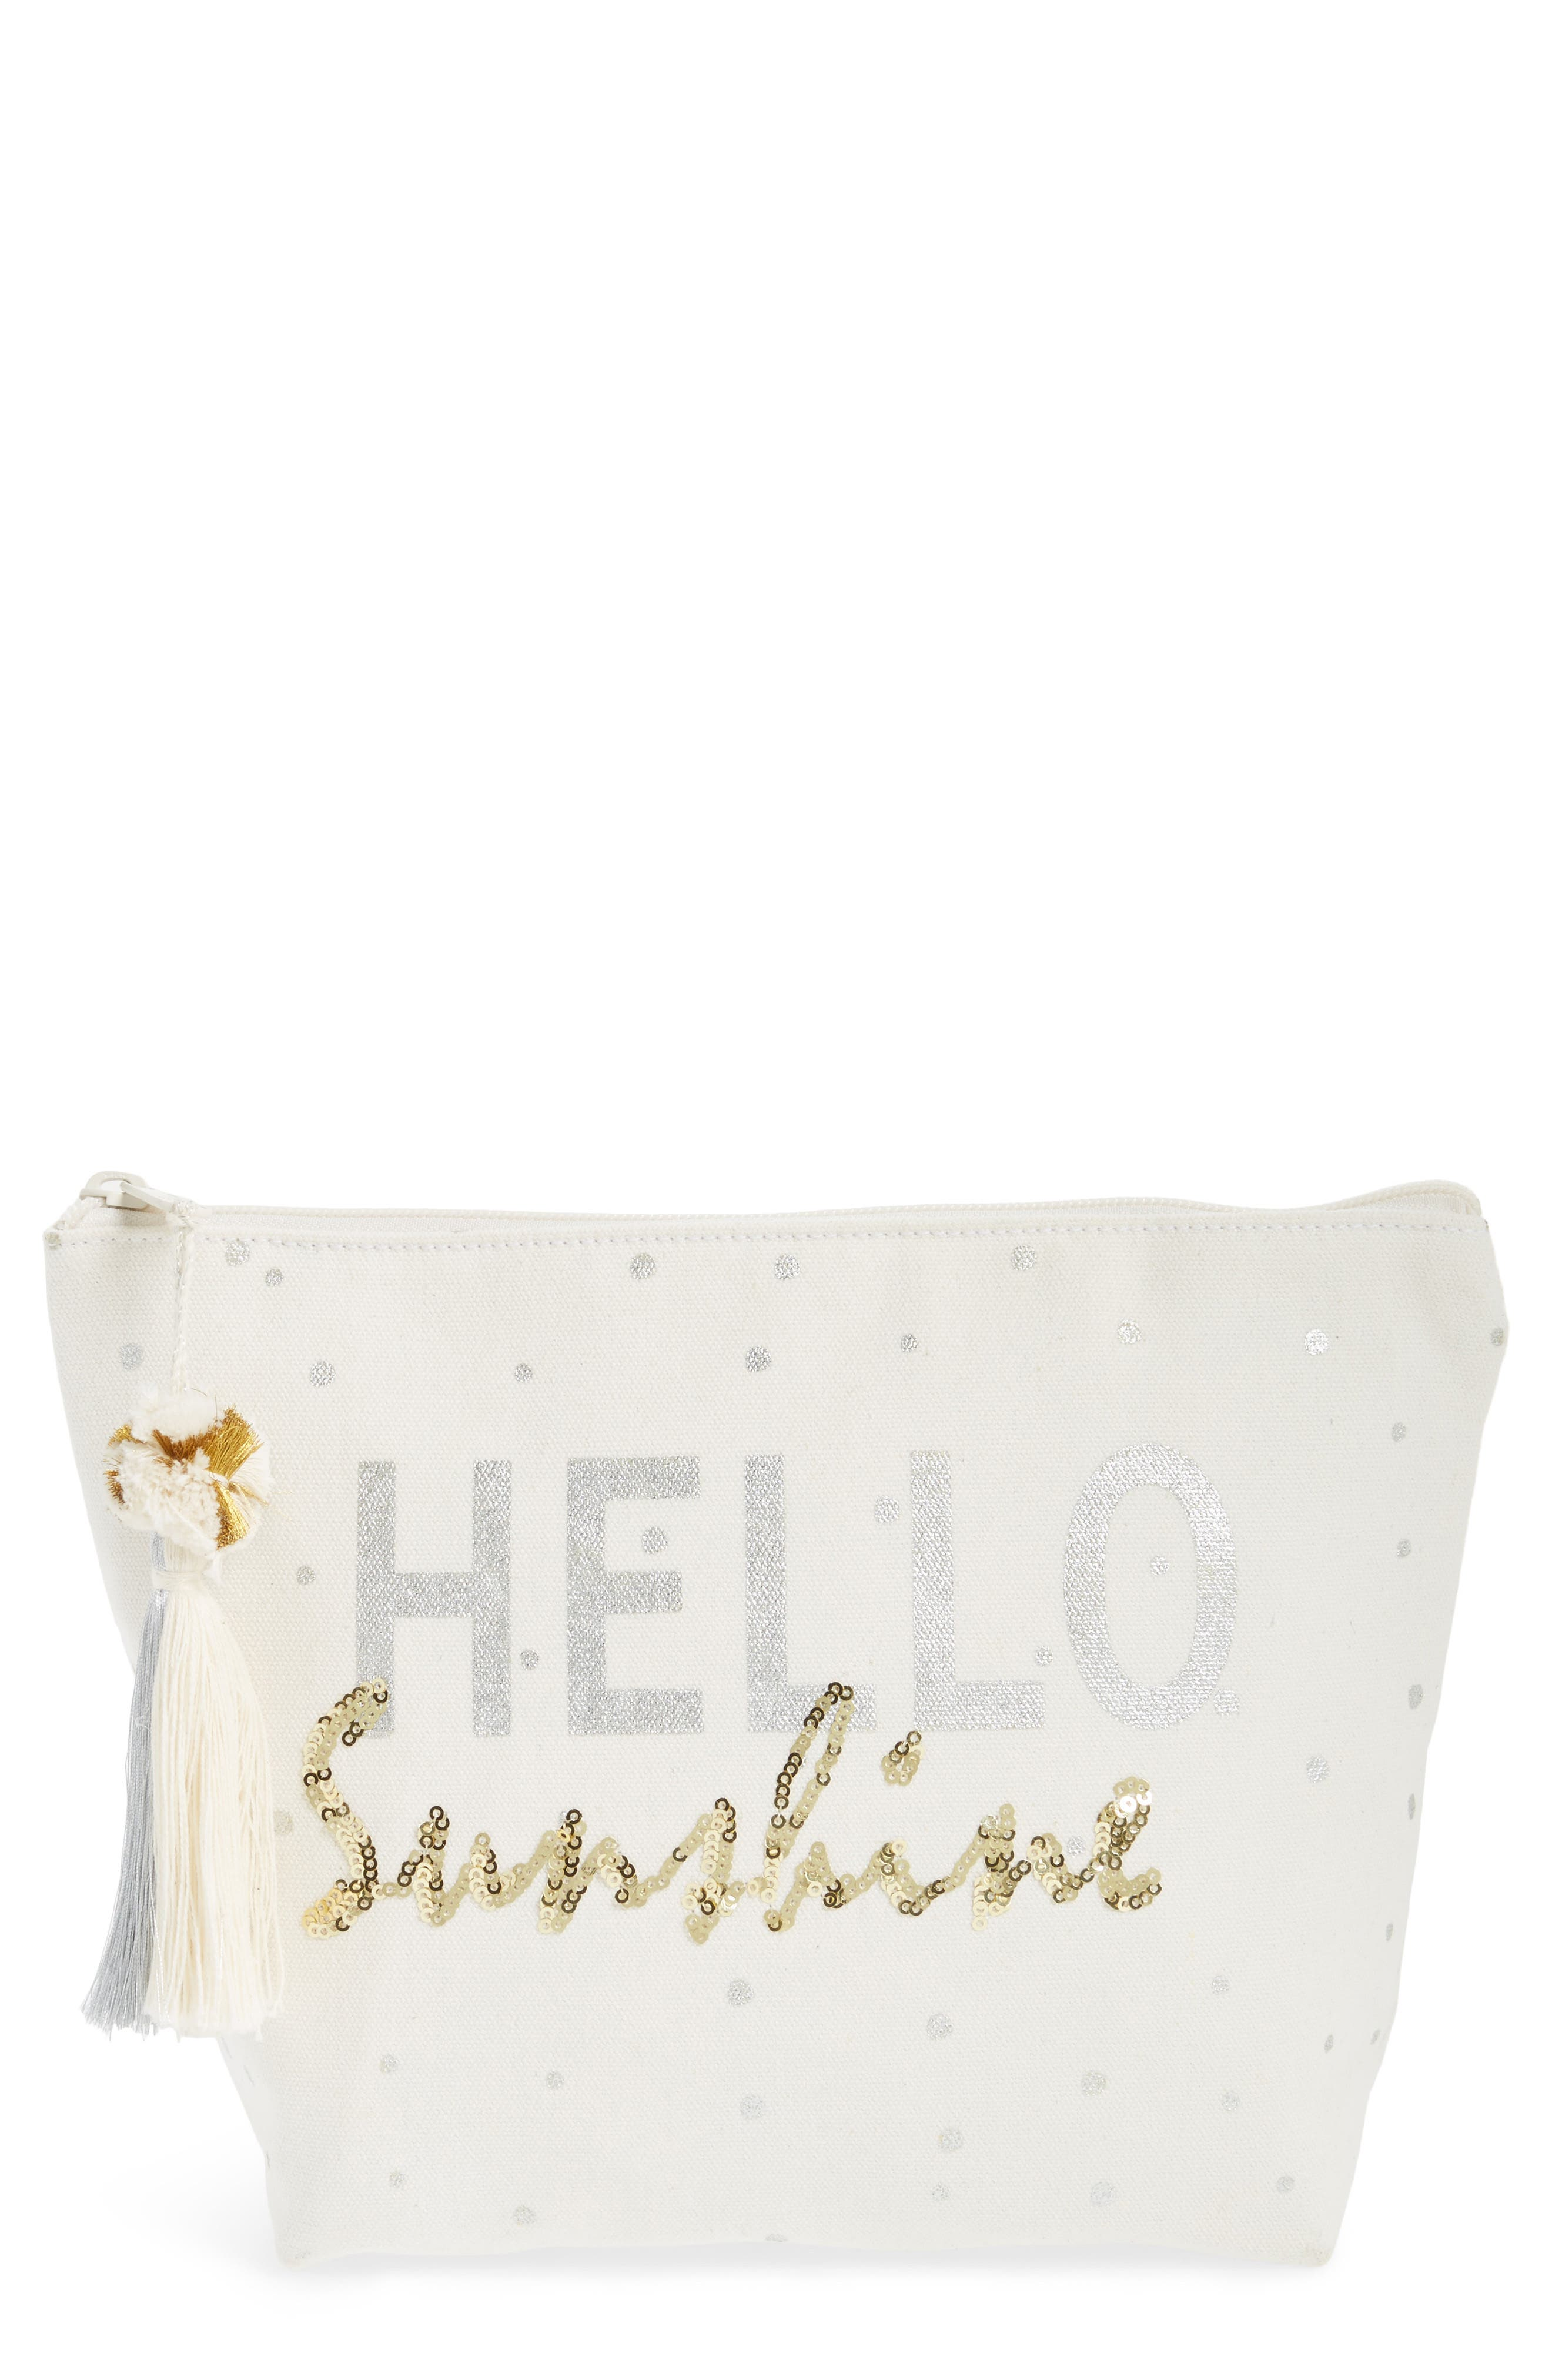 Hello Sunshine Sequin Cosmetic Pouch,                             Main thumbnail 1, color,                             250